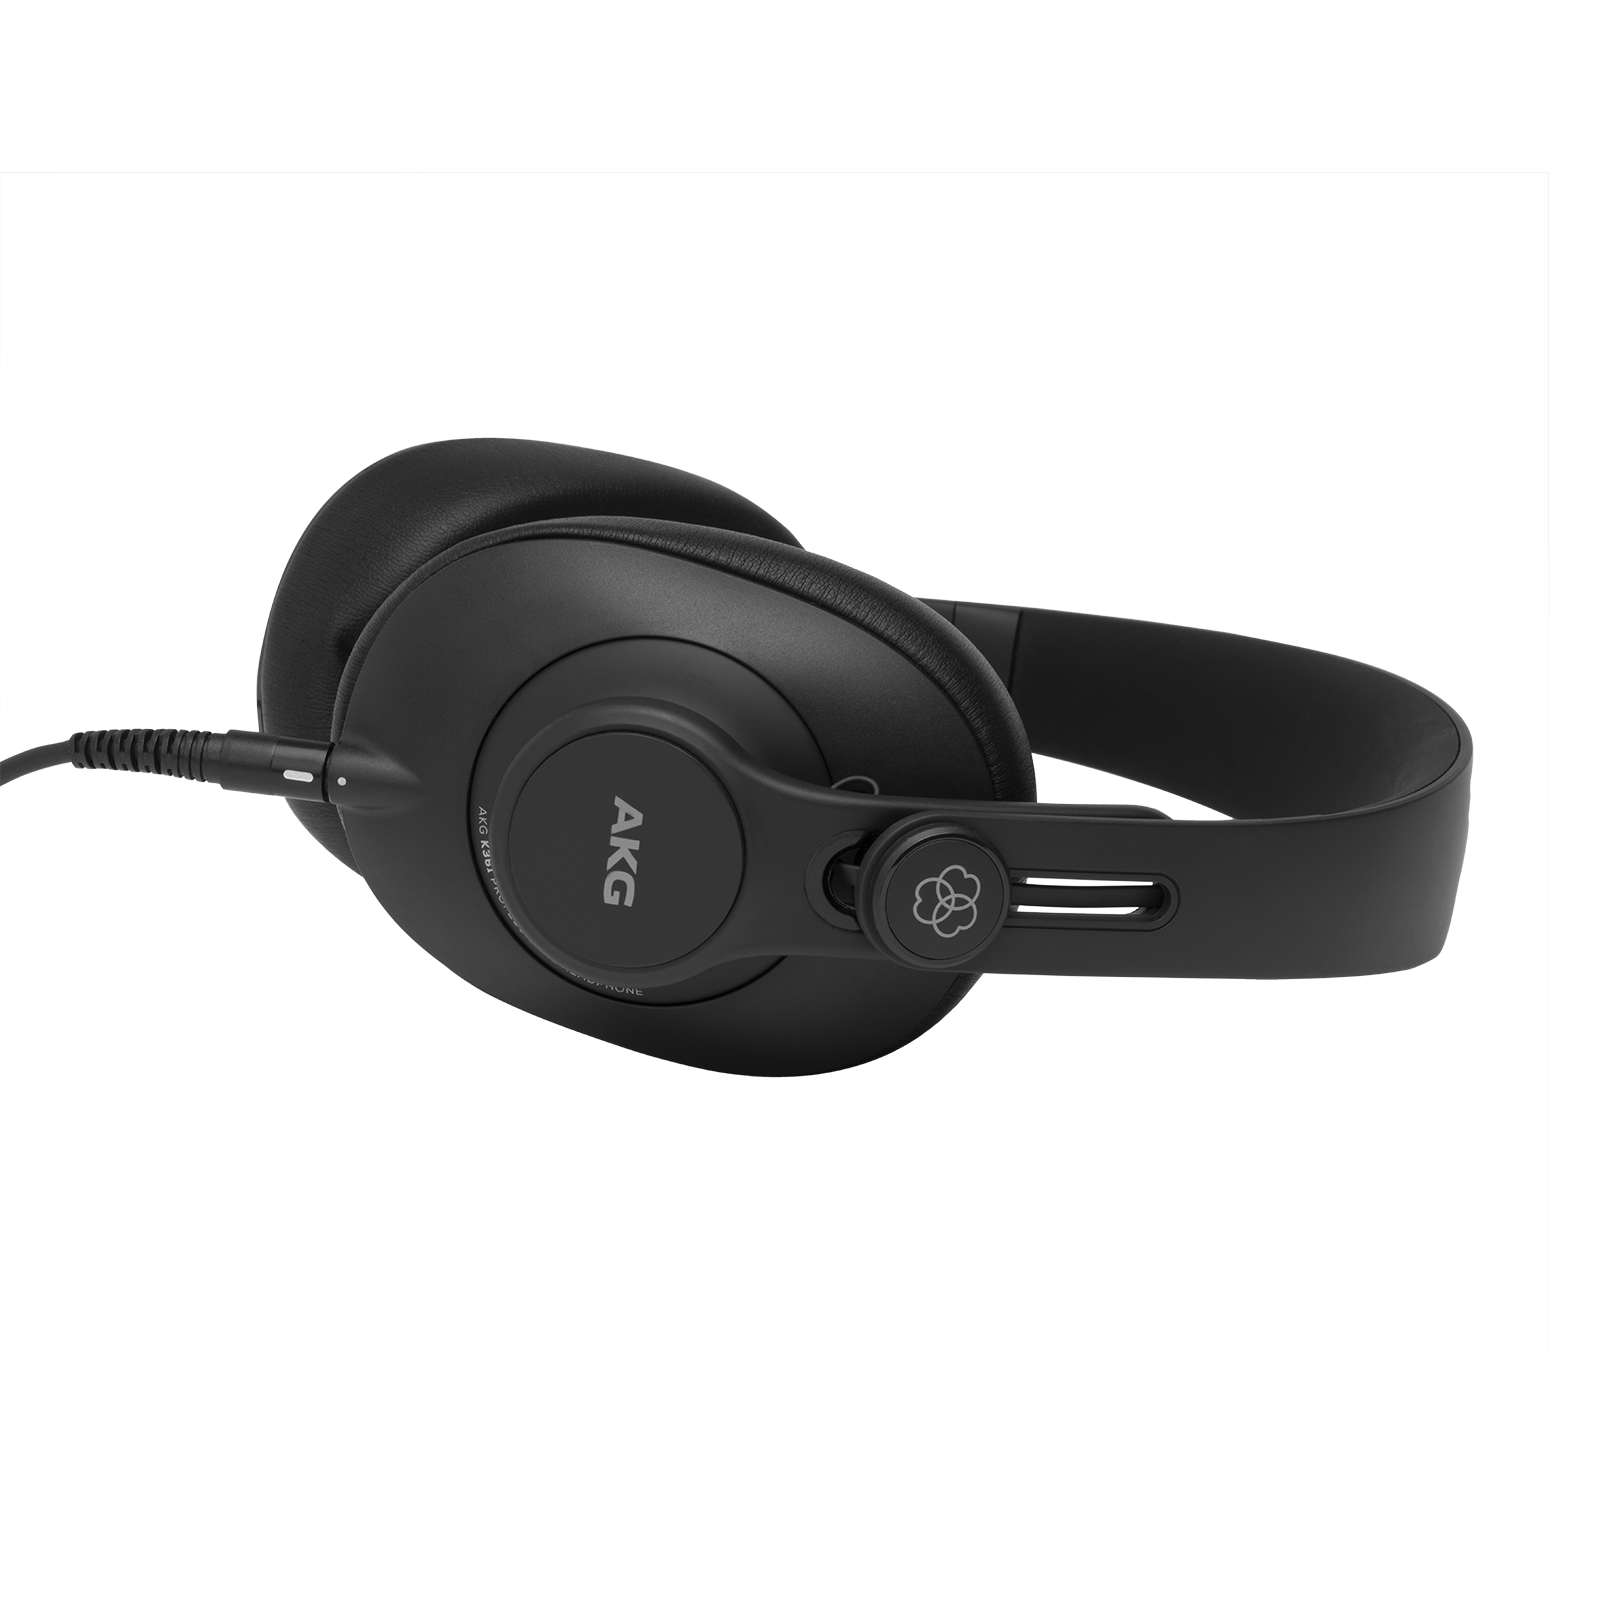 K361 - Black - Over-ear, closed-back, foldable studio headphones  - Left